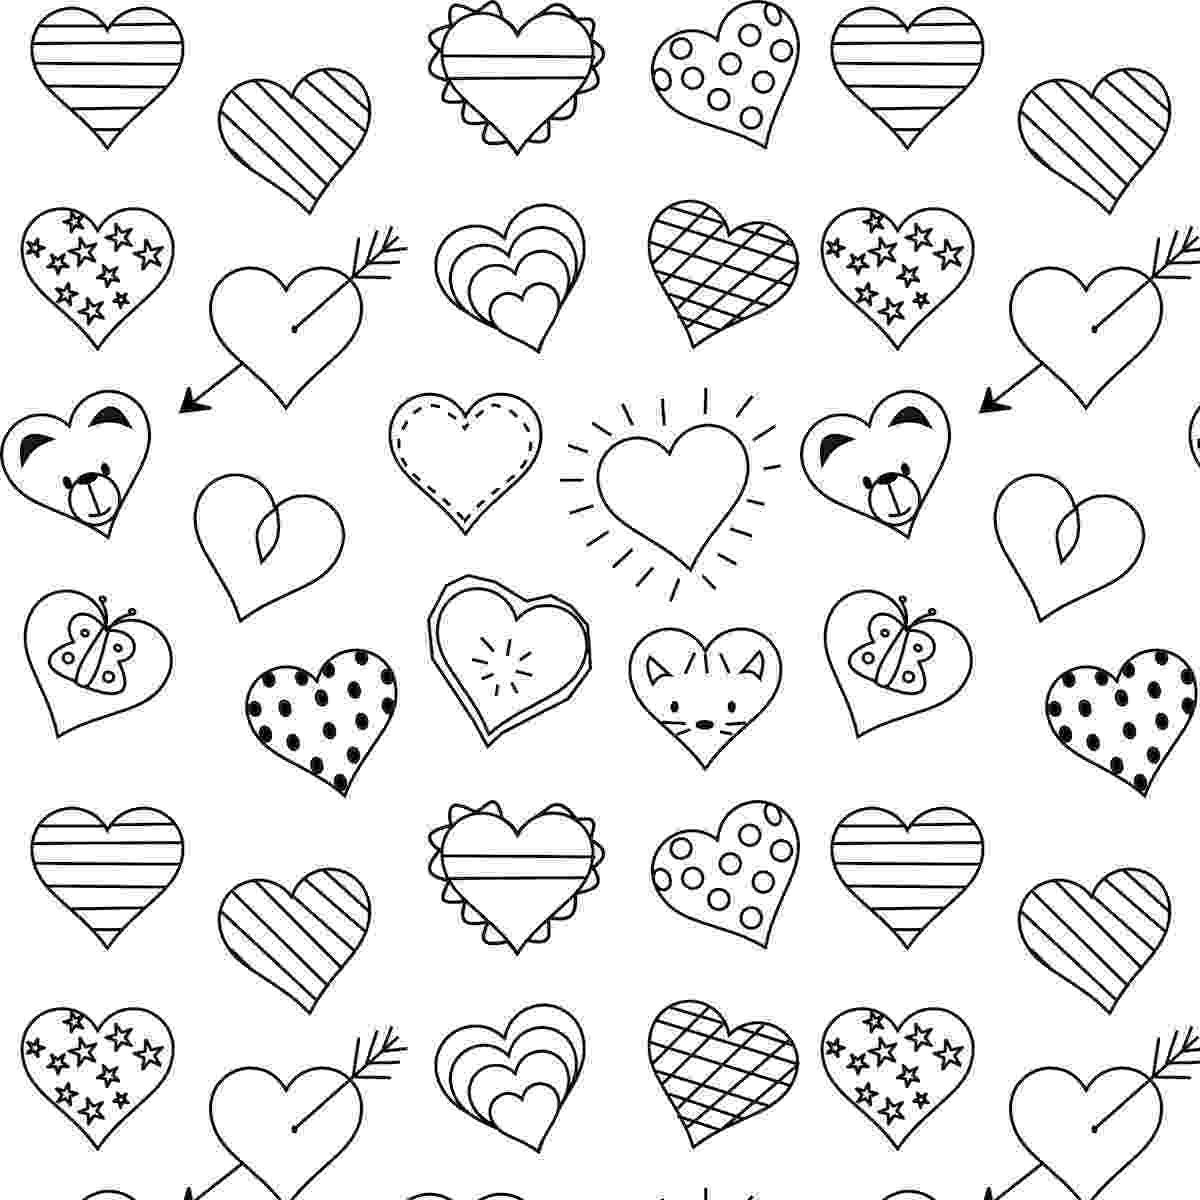 heart coloring pages free printable heart coloring pages for kids cool2bkids heart pages coloring